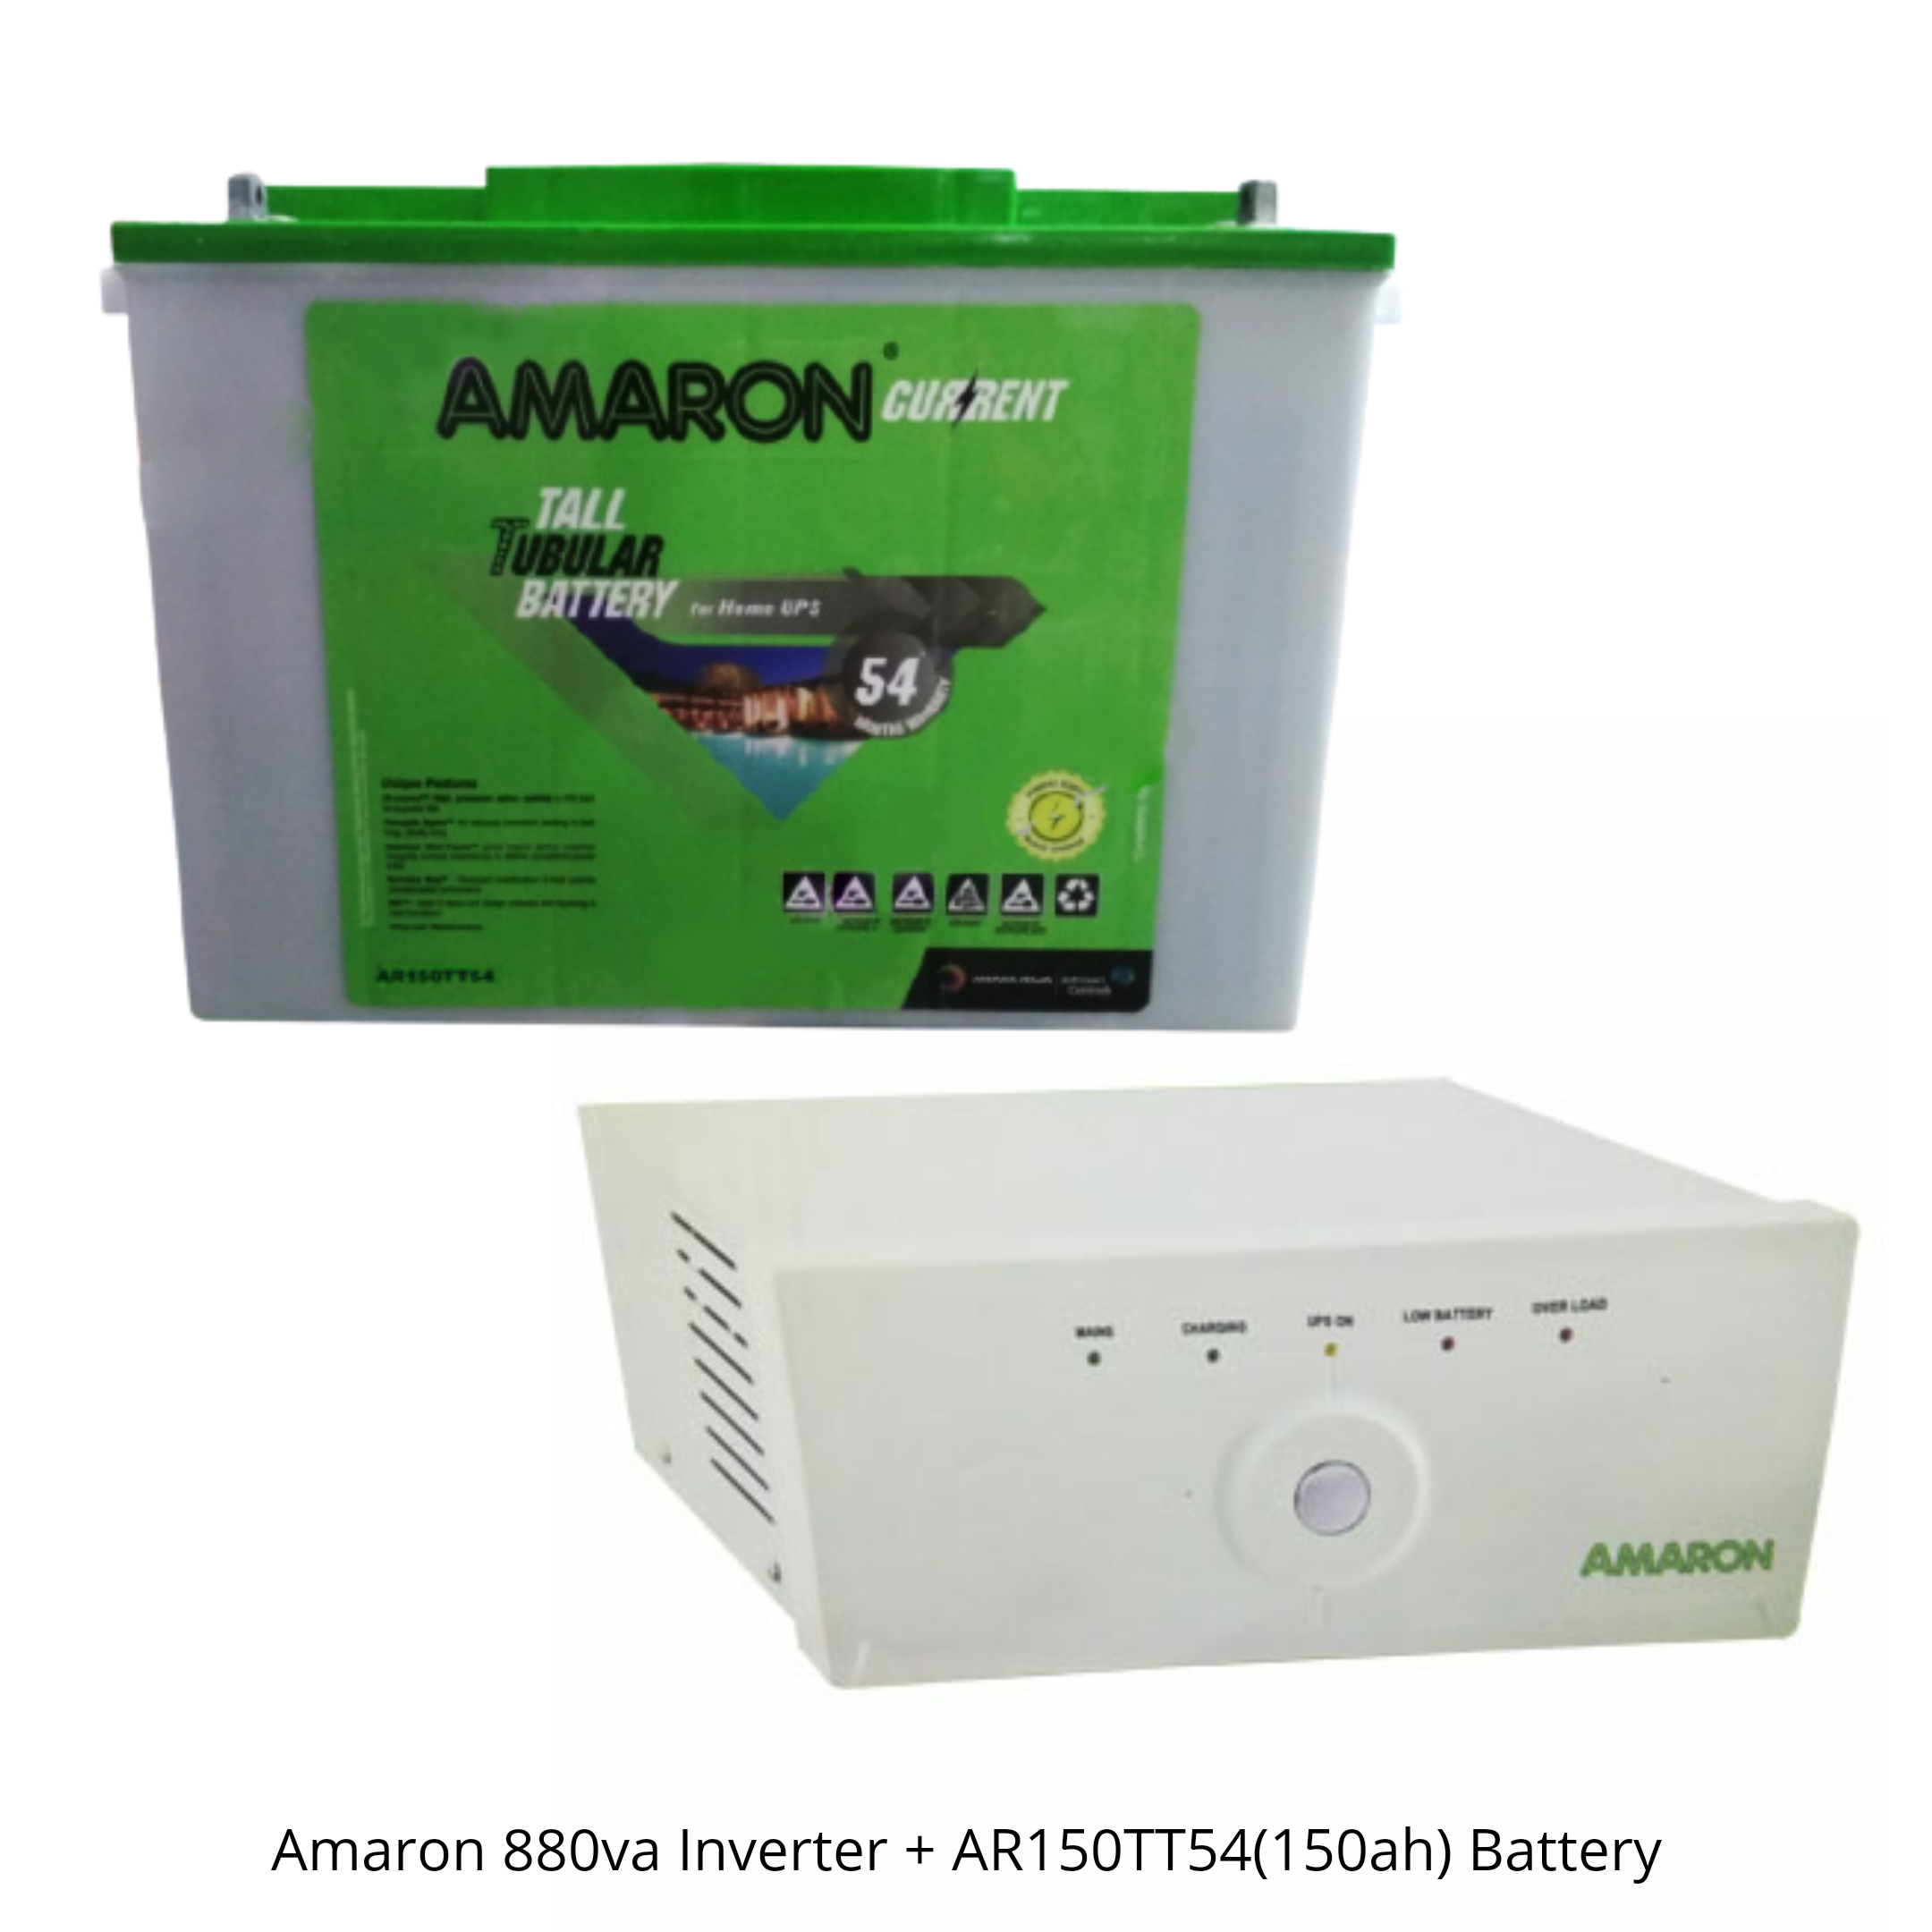 AMARON 880 SINE WAVE UPS AND AMARON AAM-CR-AR150TT54